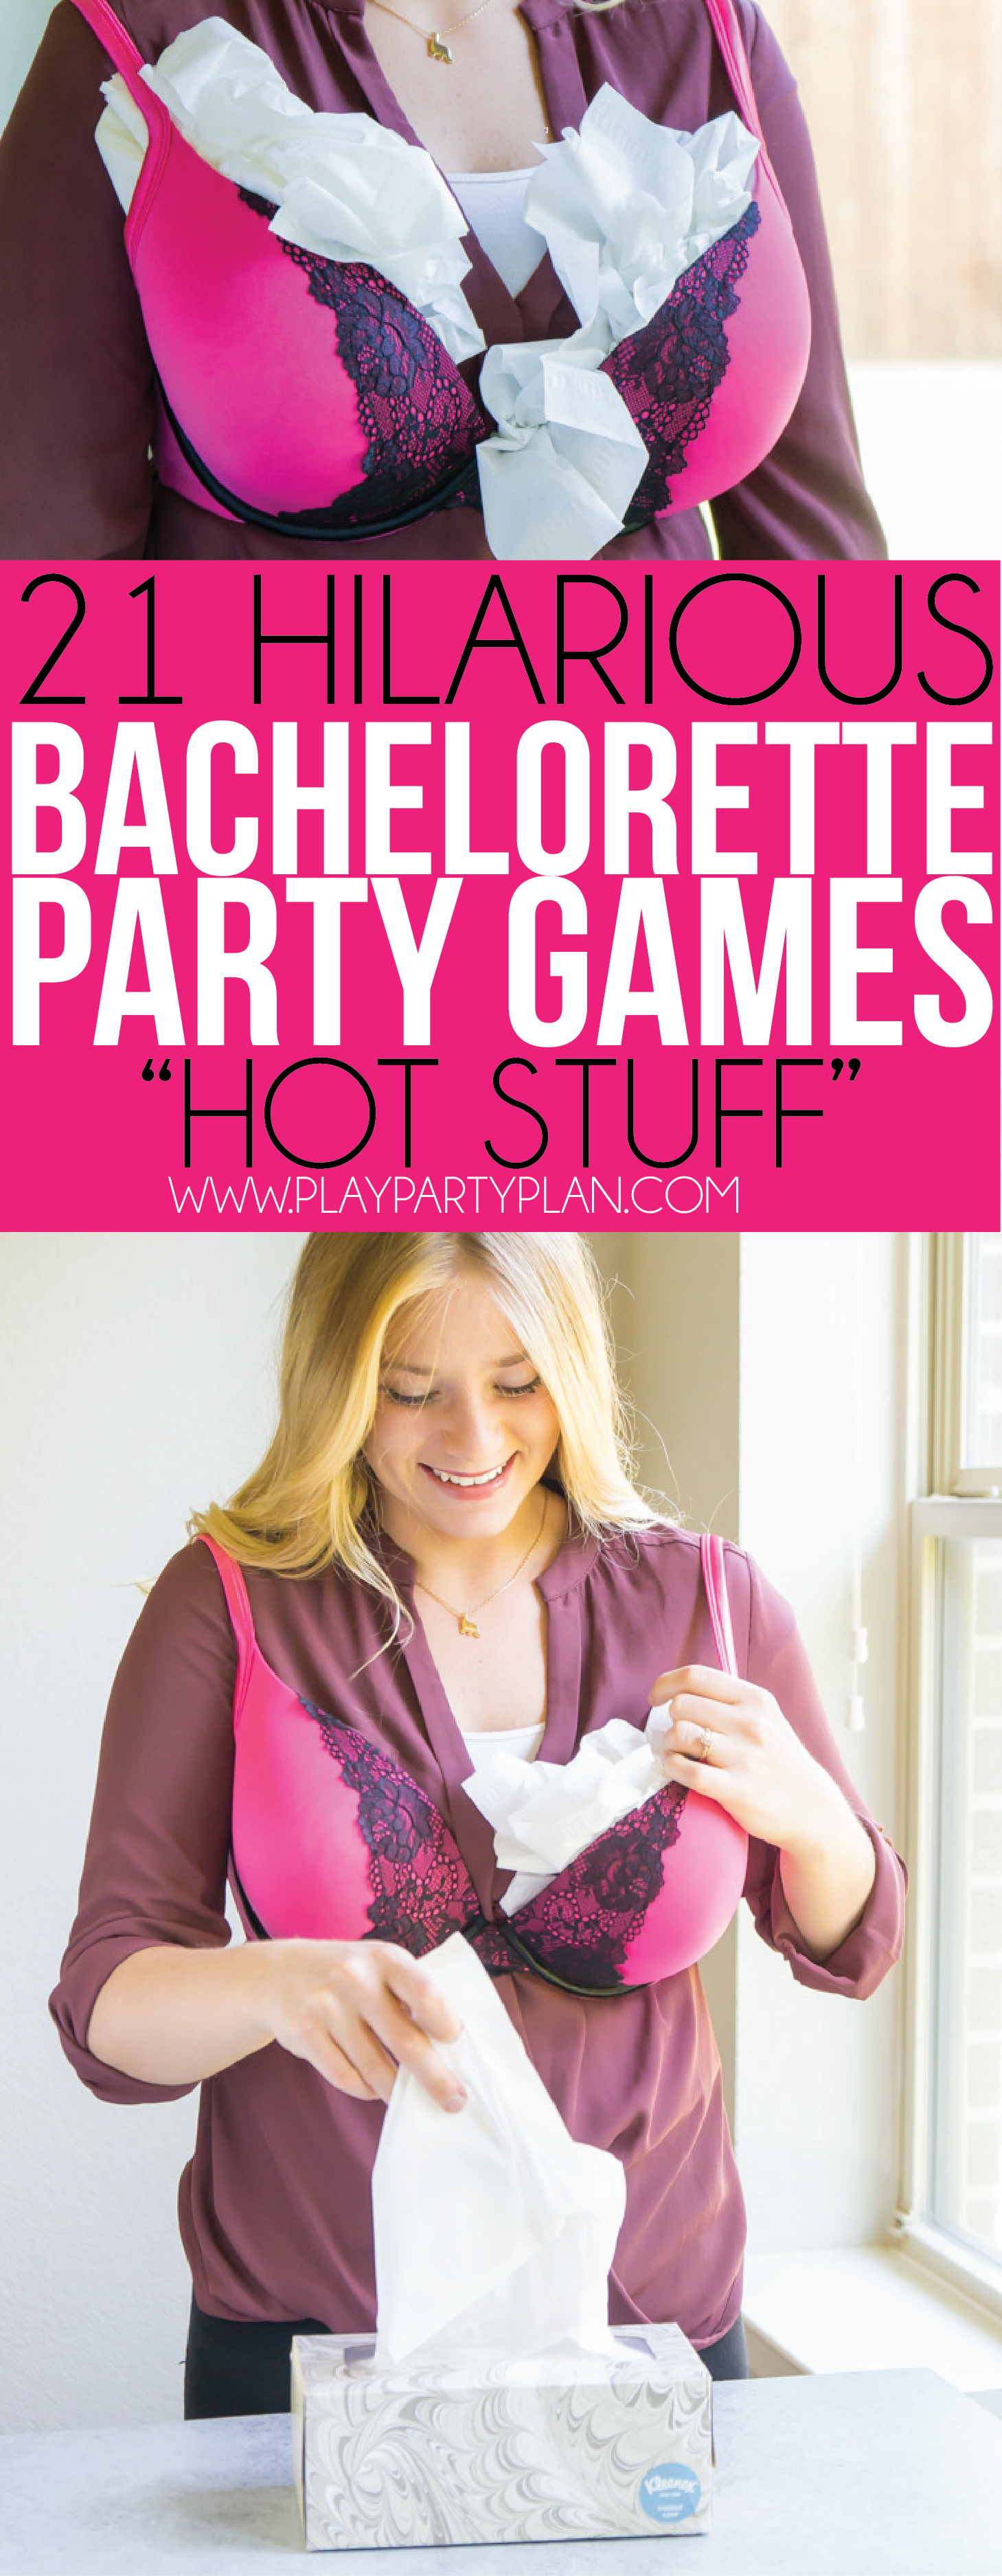 Race to be the first to stuff a bra in these hilarious bachelorette party games